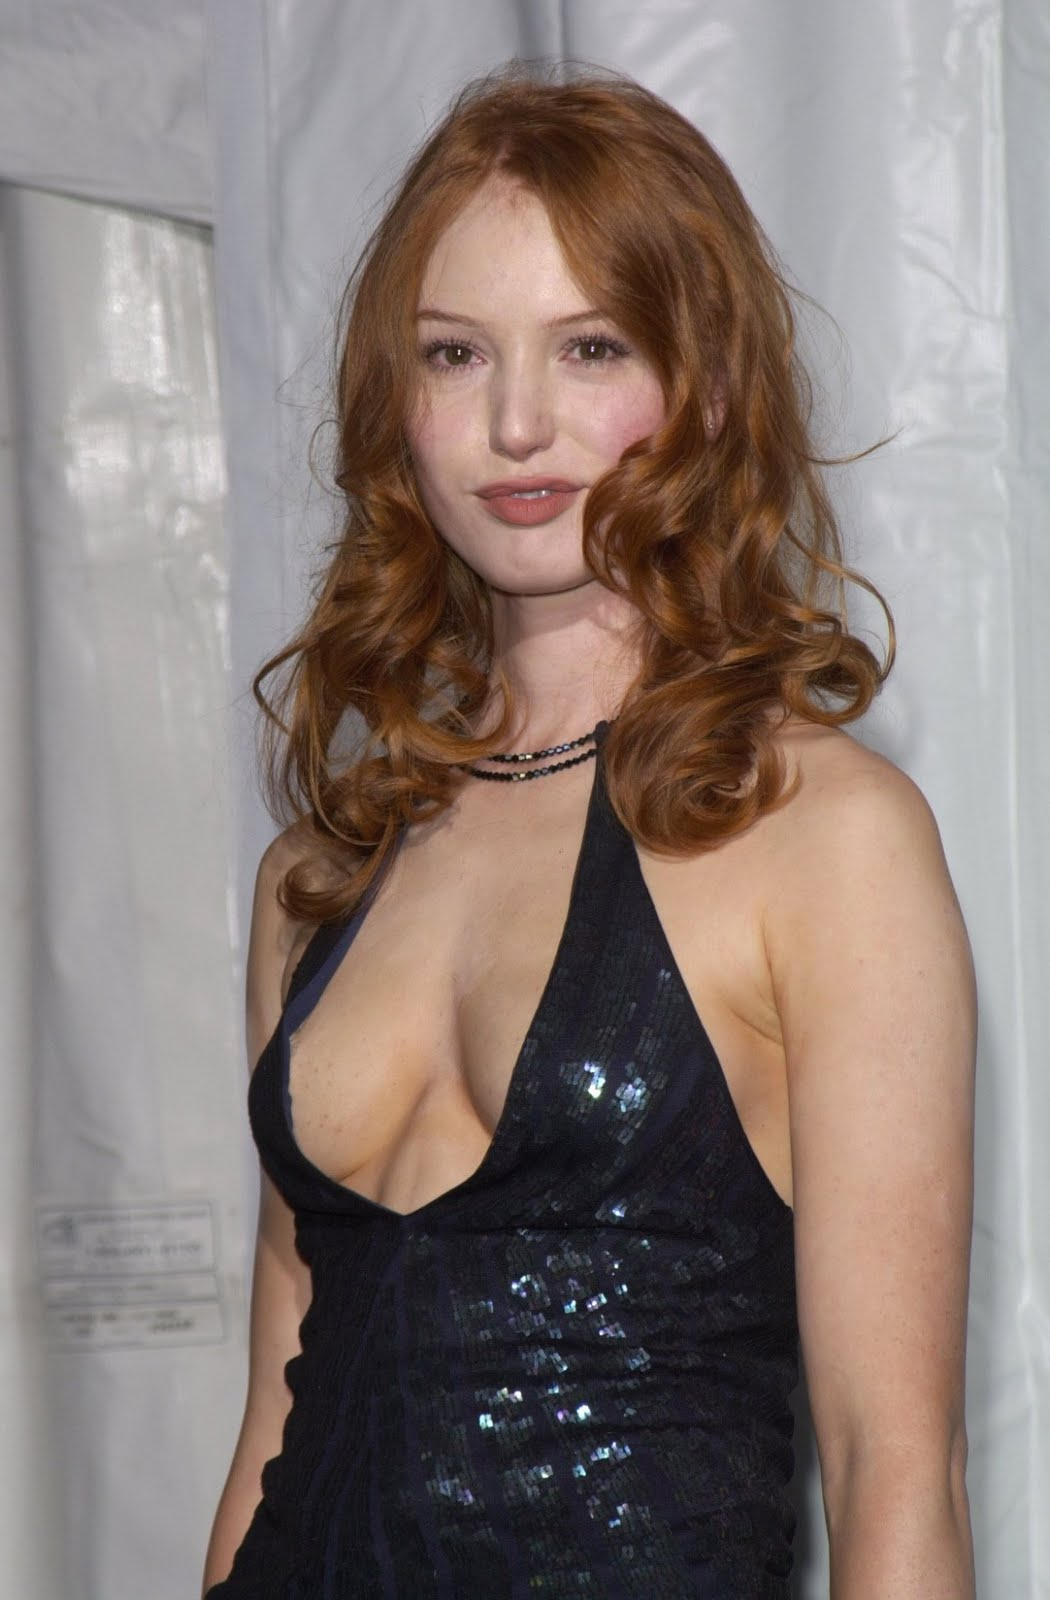 Diane Witt Hair http://bilalalisheikh.blogspot.com/2012/03/wallpapers-and-pictures-of-alicia-witt.html